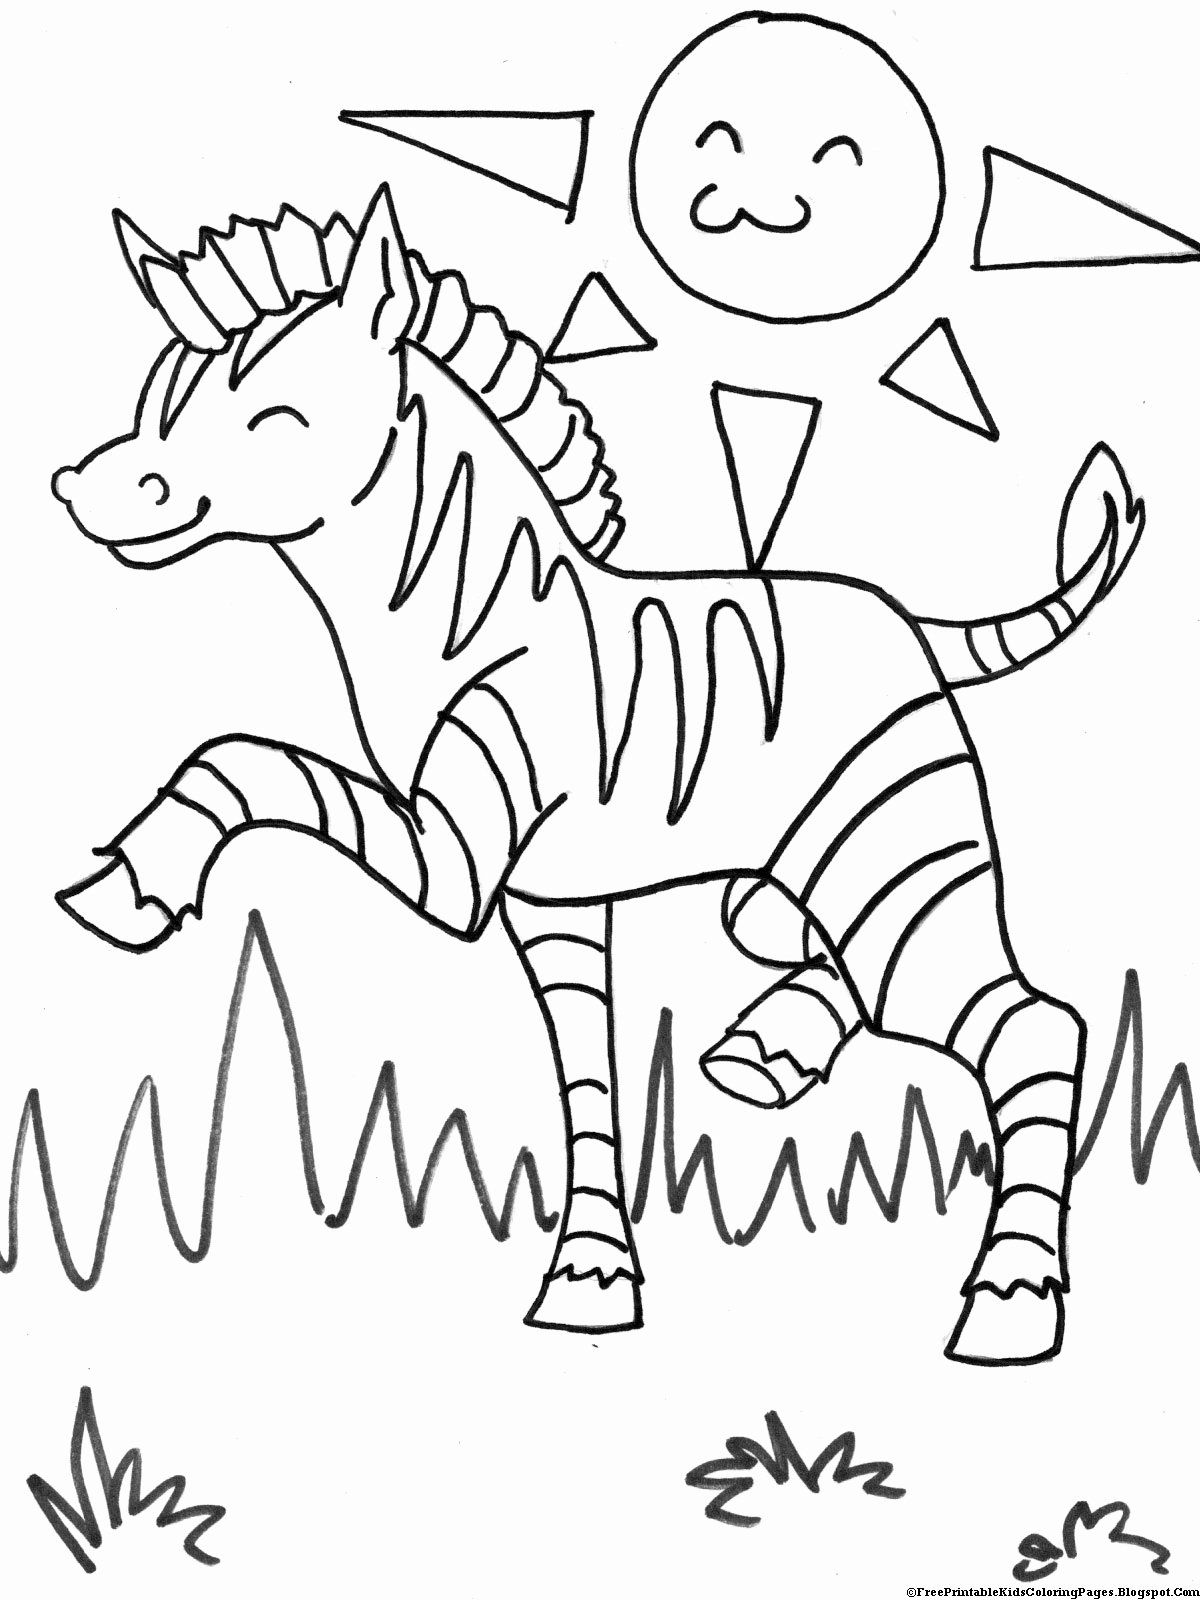 Baby Zebra Coloring Pages Elegant Zebra Coloring Pages Free Printable Kids Colorin In 2020 Zebra Coloring Pages Zoo Animal Coloring Pages Free Printable Coloring Pages